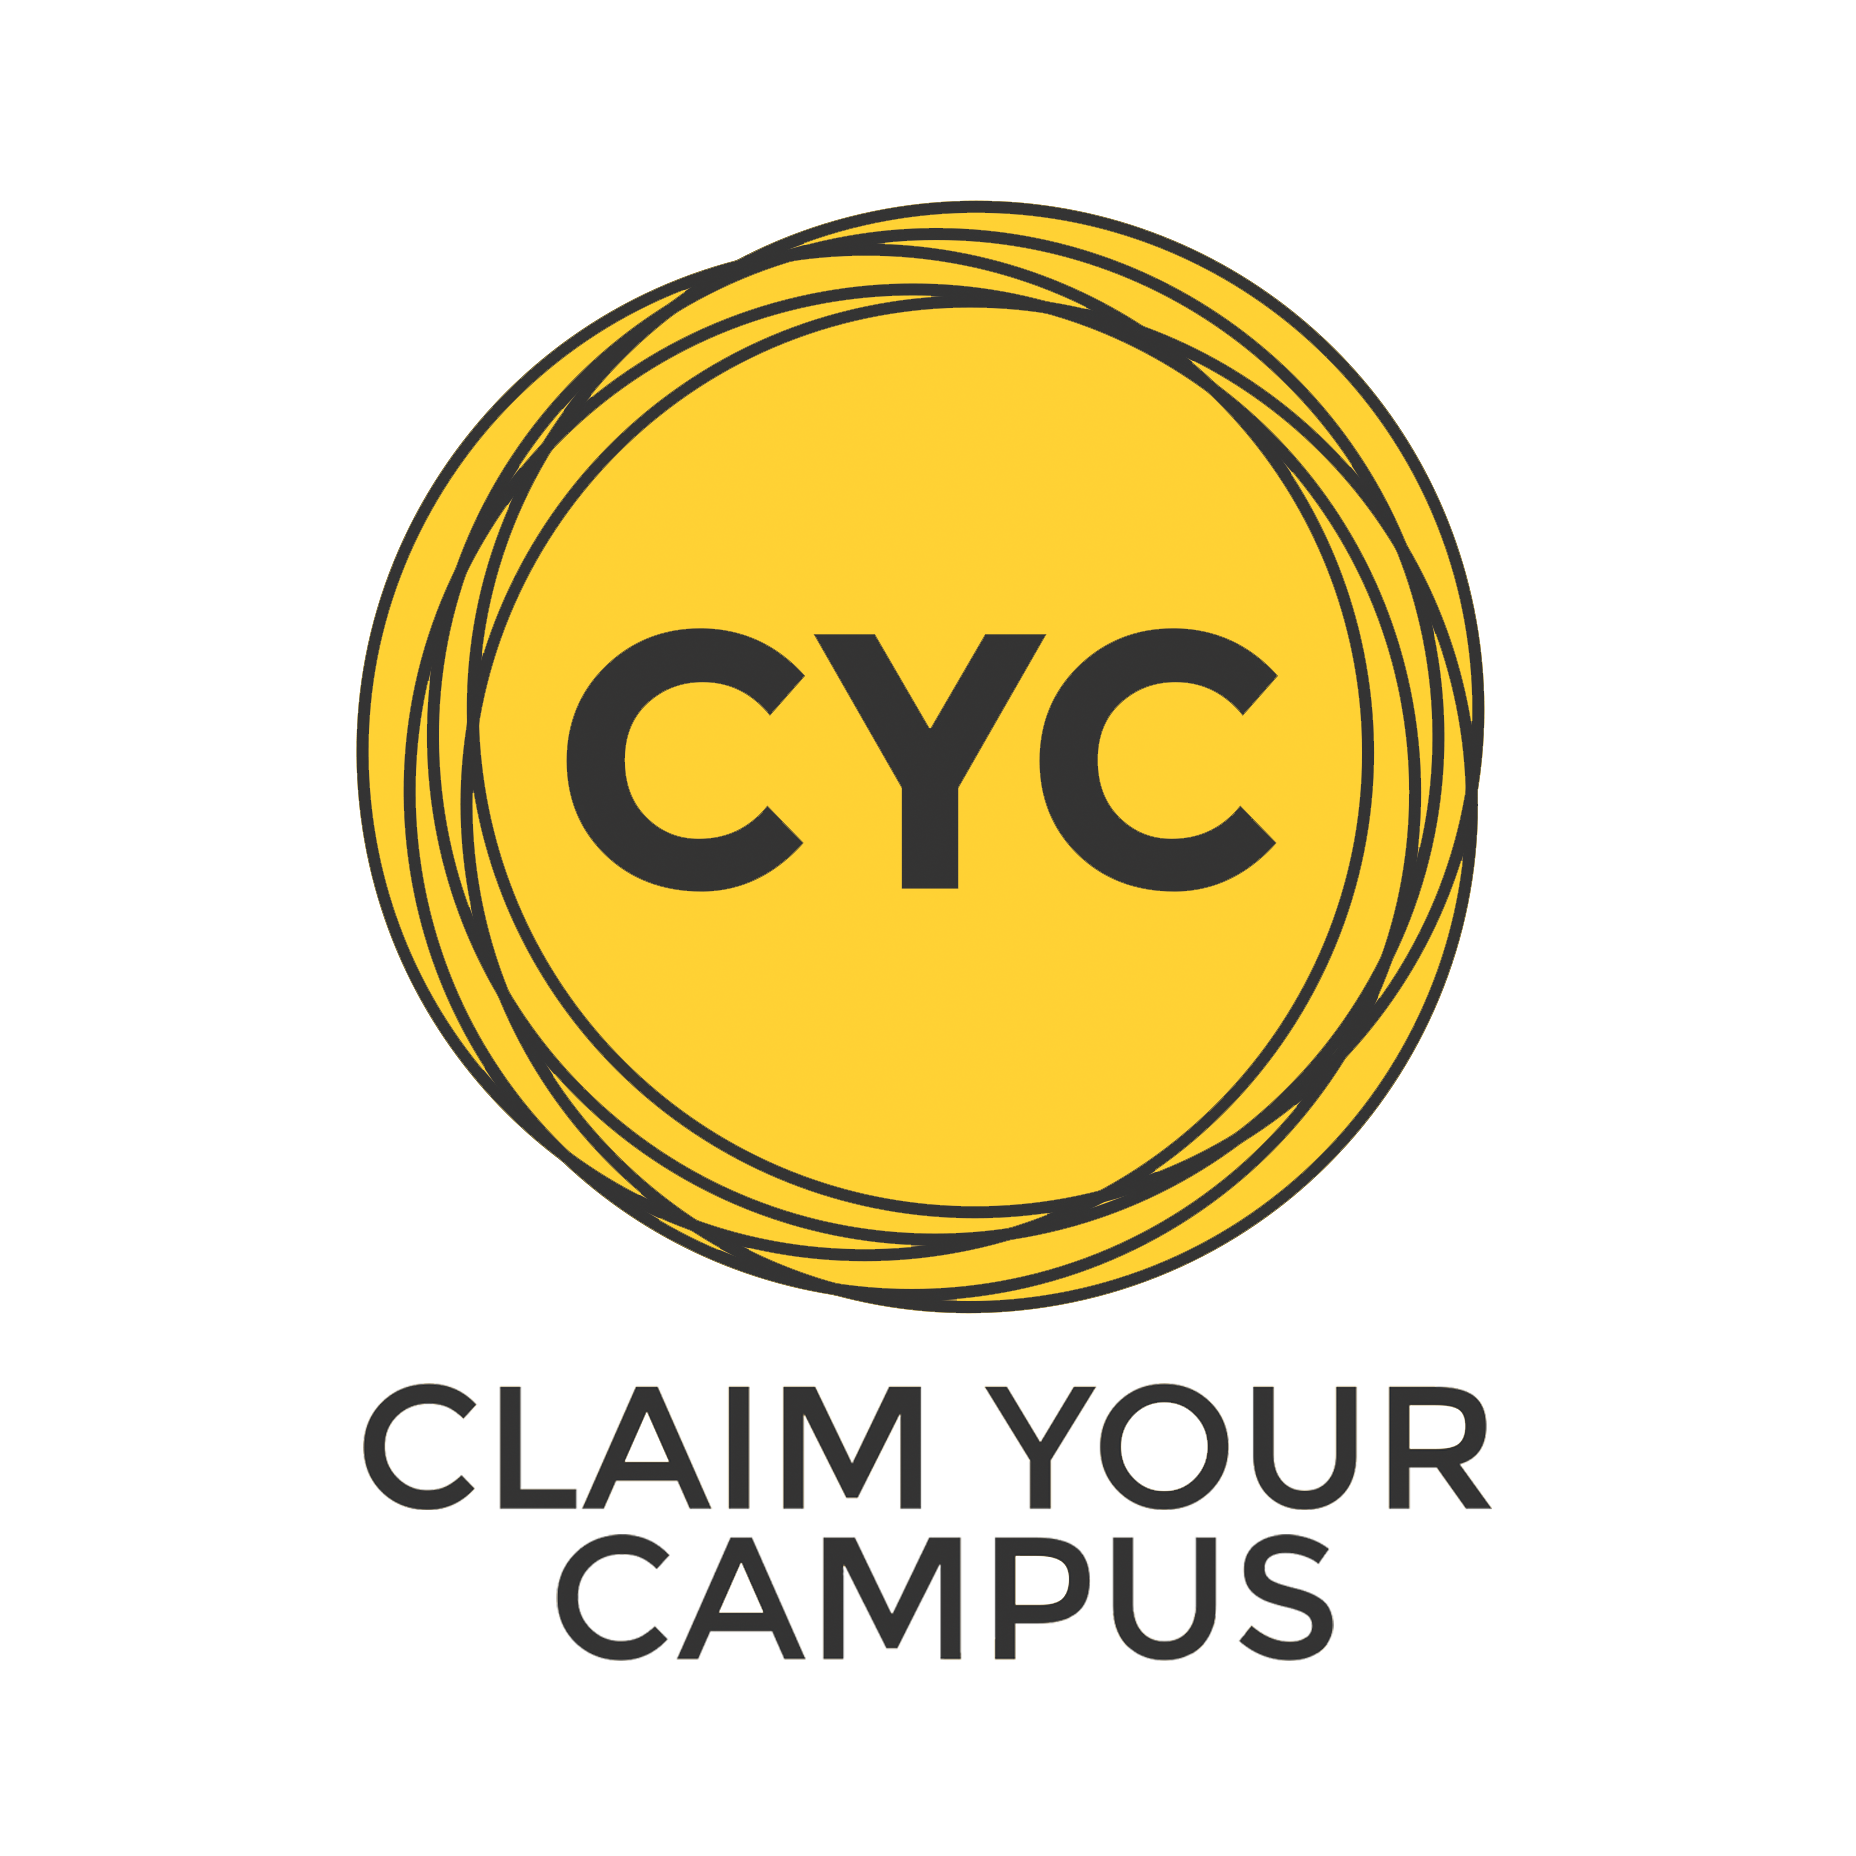 CYC-Logo-with-Yellow-BG.png